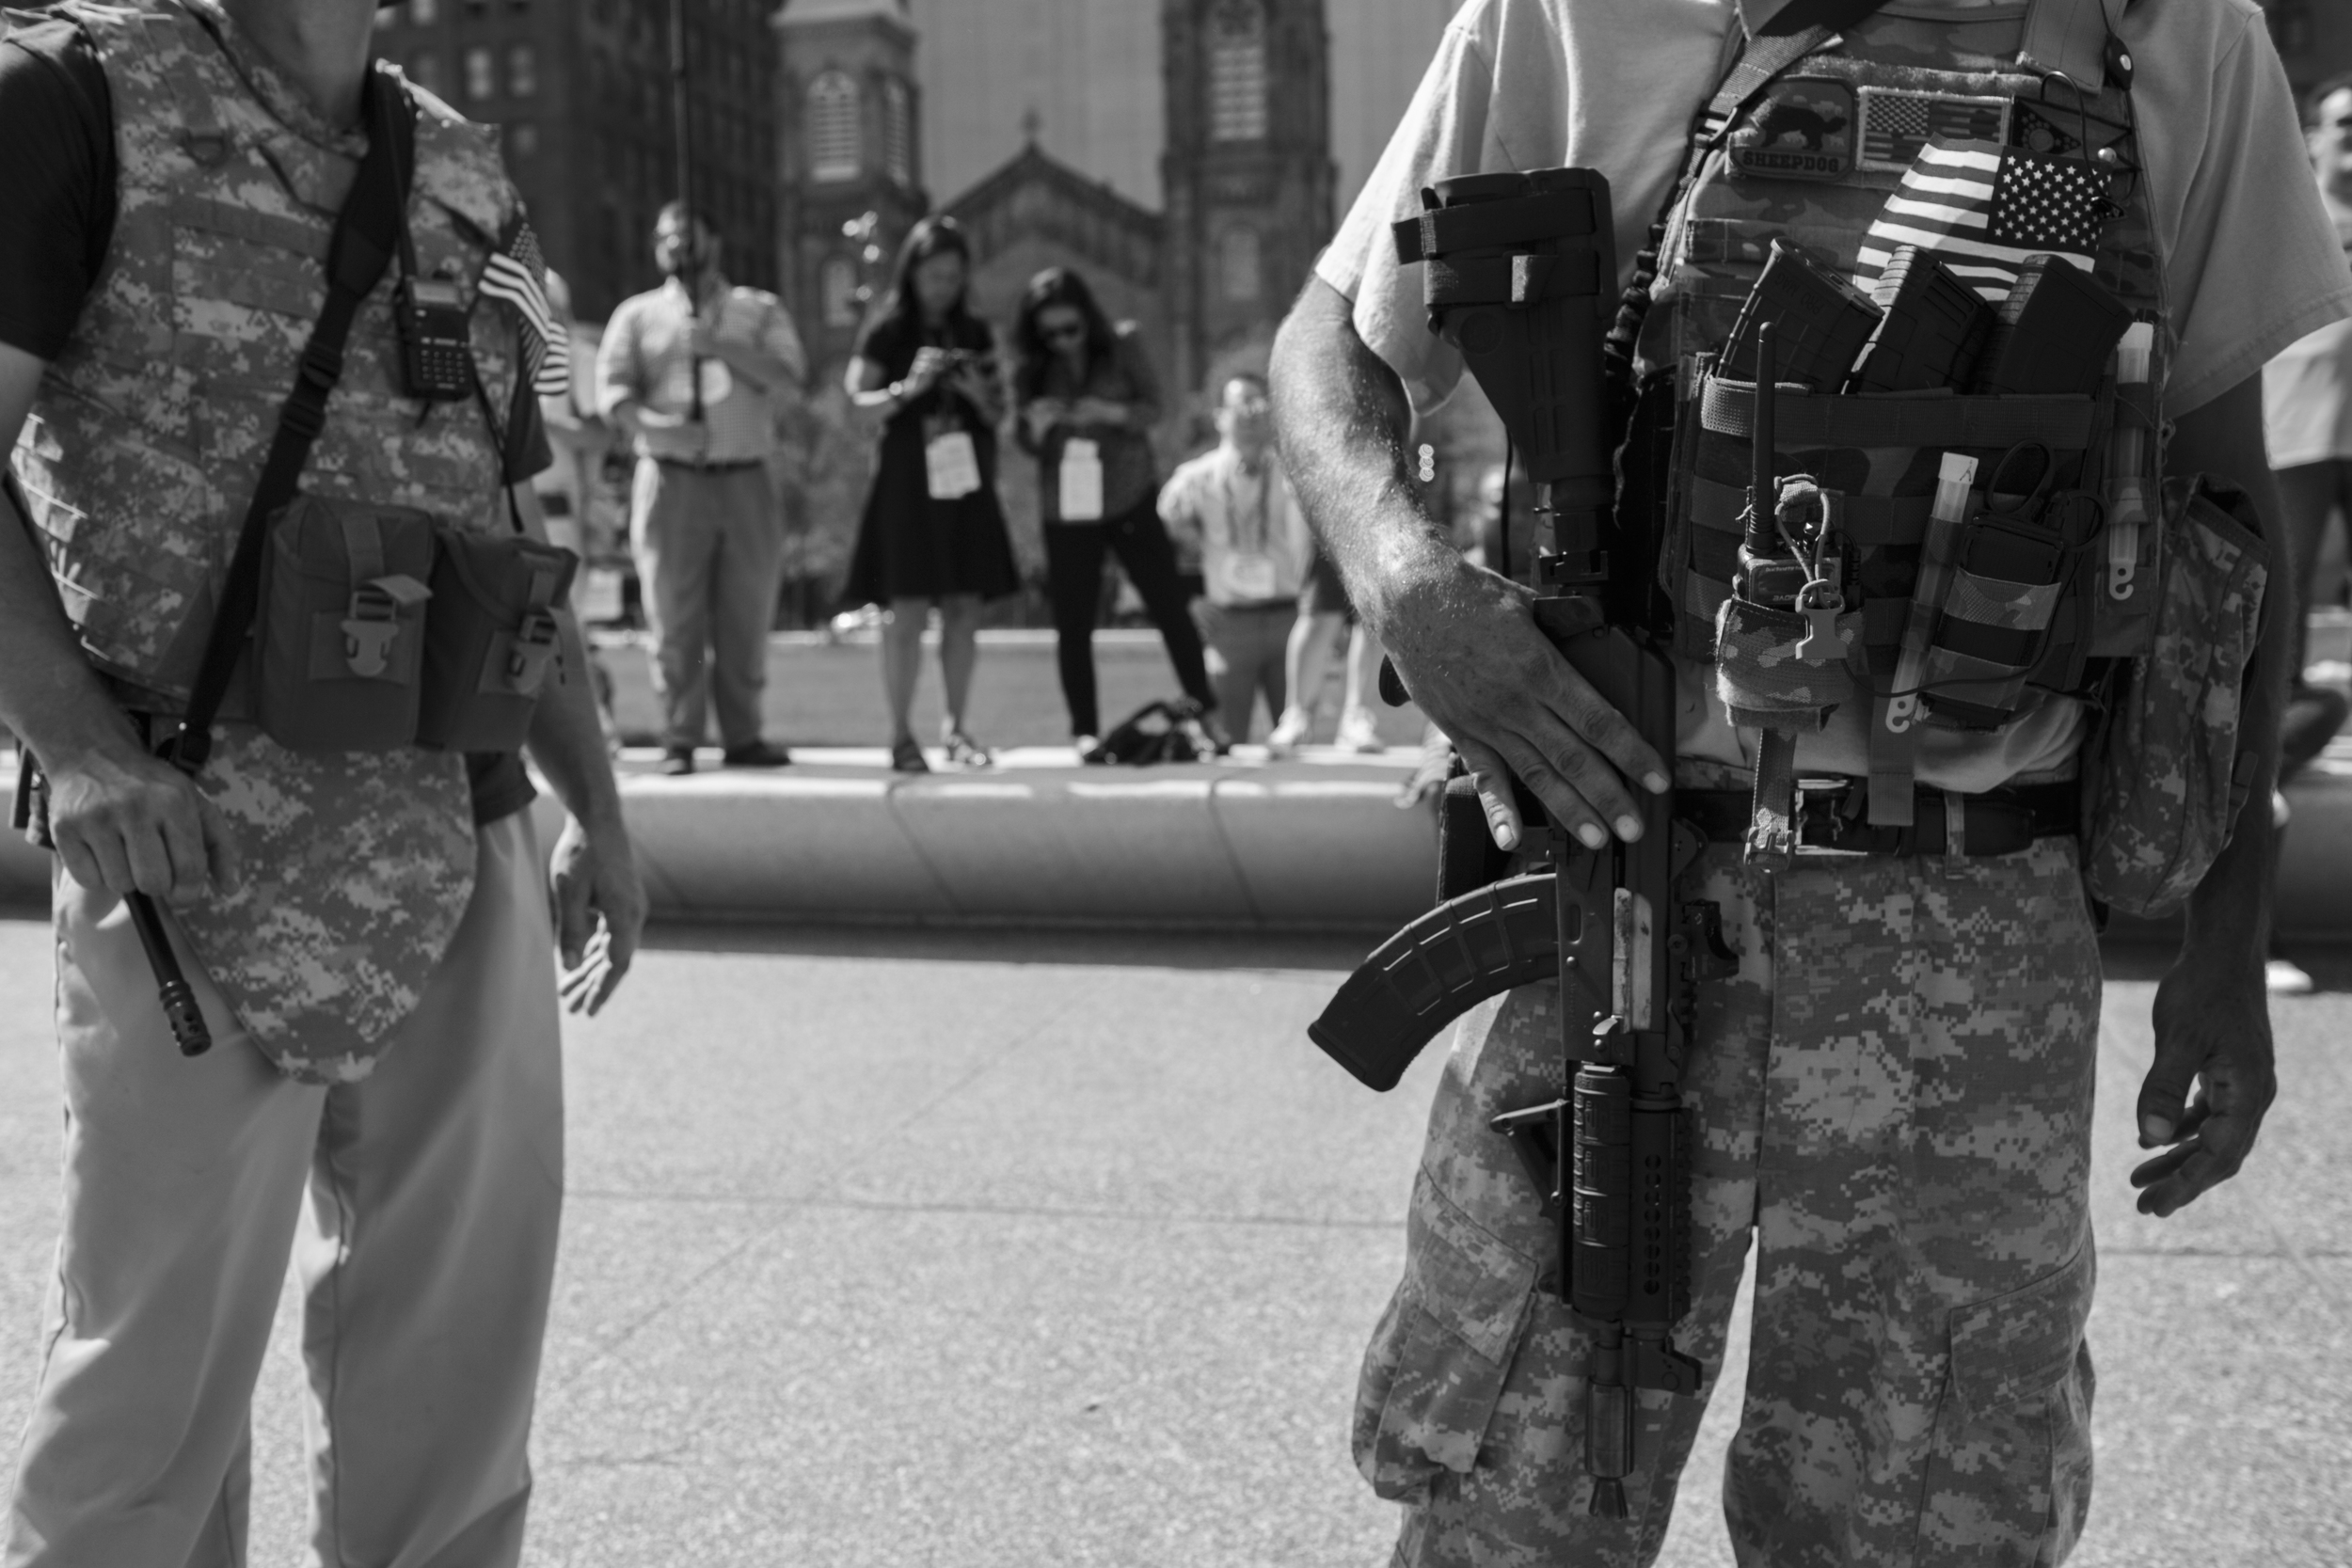 19 July 2016 - Cleveland, Ohio - Open-carry activists present their weapons on Public Square and refeer to the Second Amendment. Prior to the Republican National Convention the Cleveland Police union asked for a suspension of the open-carry law as a response to the shootings in Baton Rouge. Photo: Cédric von Niederhäusern